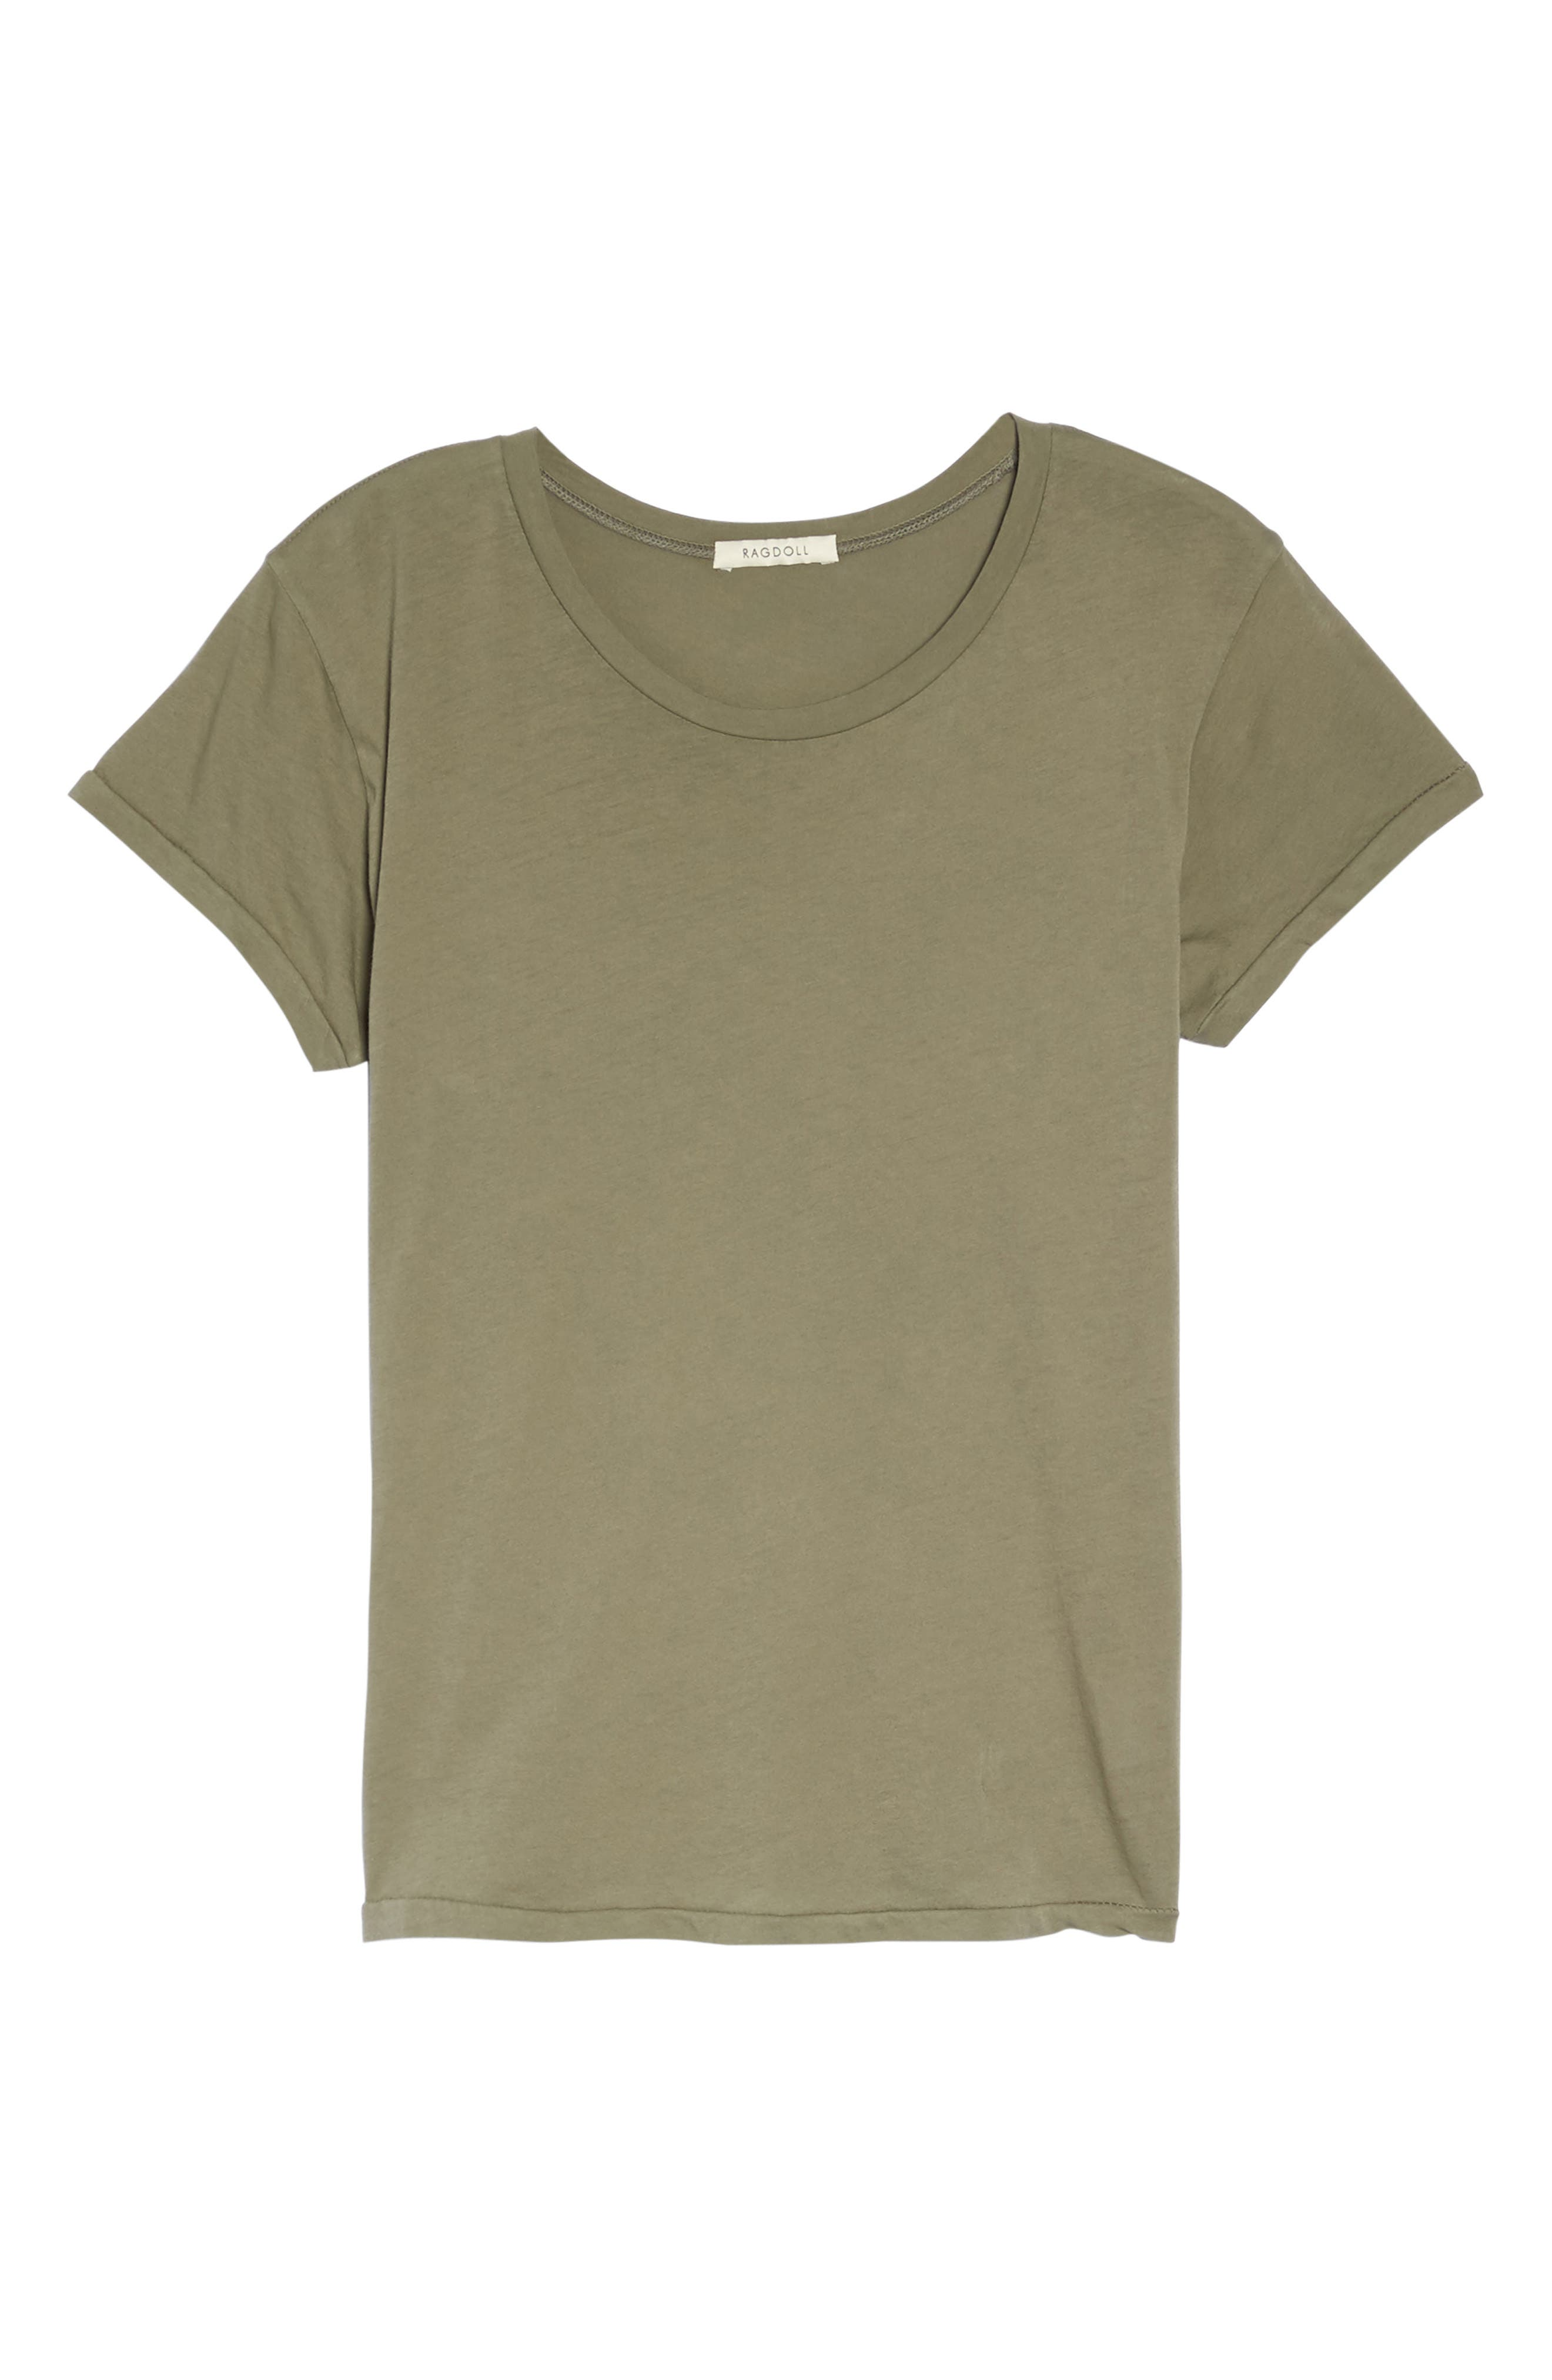 Tee,                             Alternate thumbnail 4, color,                             Army